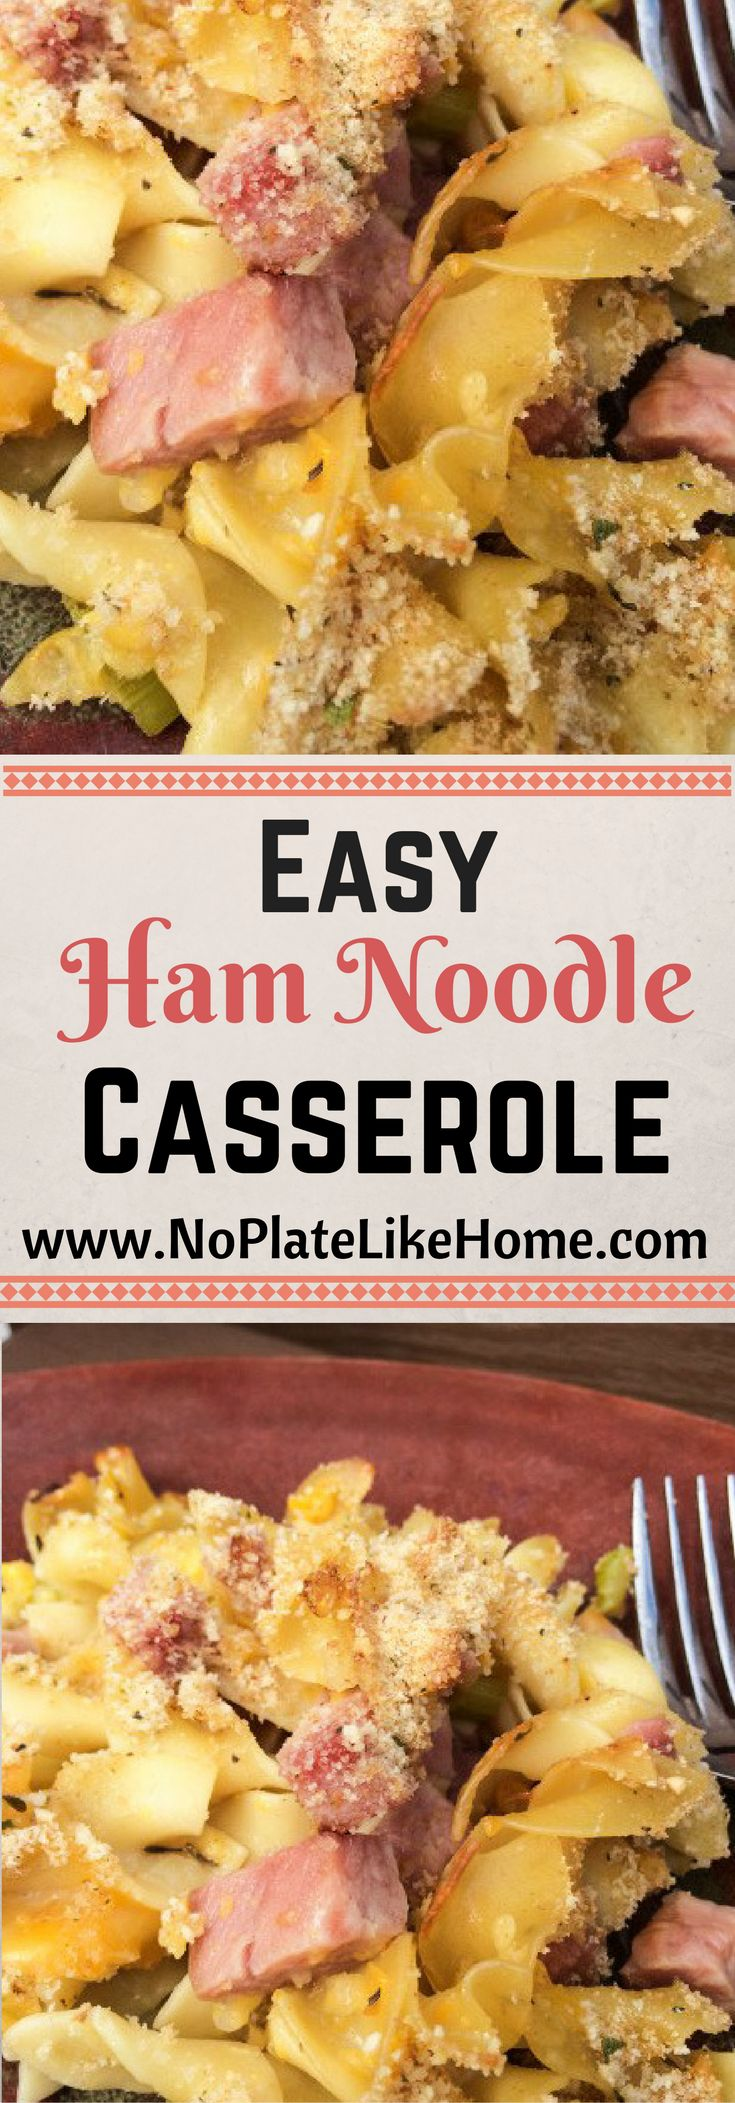 Easy oven baked Ham Noodle Casserole with cheese, corn topped with bread crumbs. Perfect weeknight meal for leftover ham!